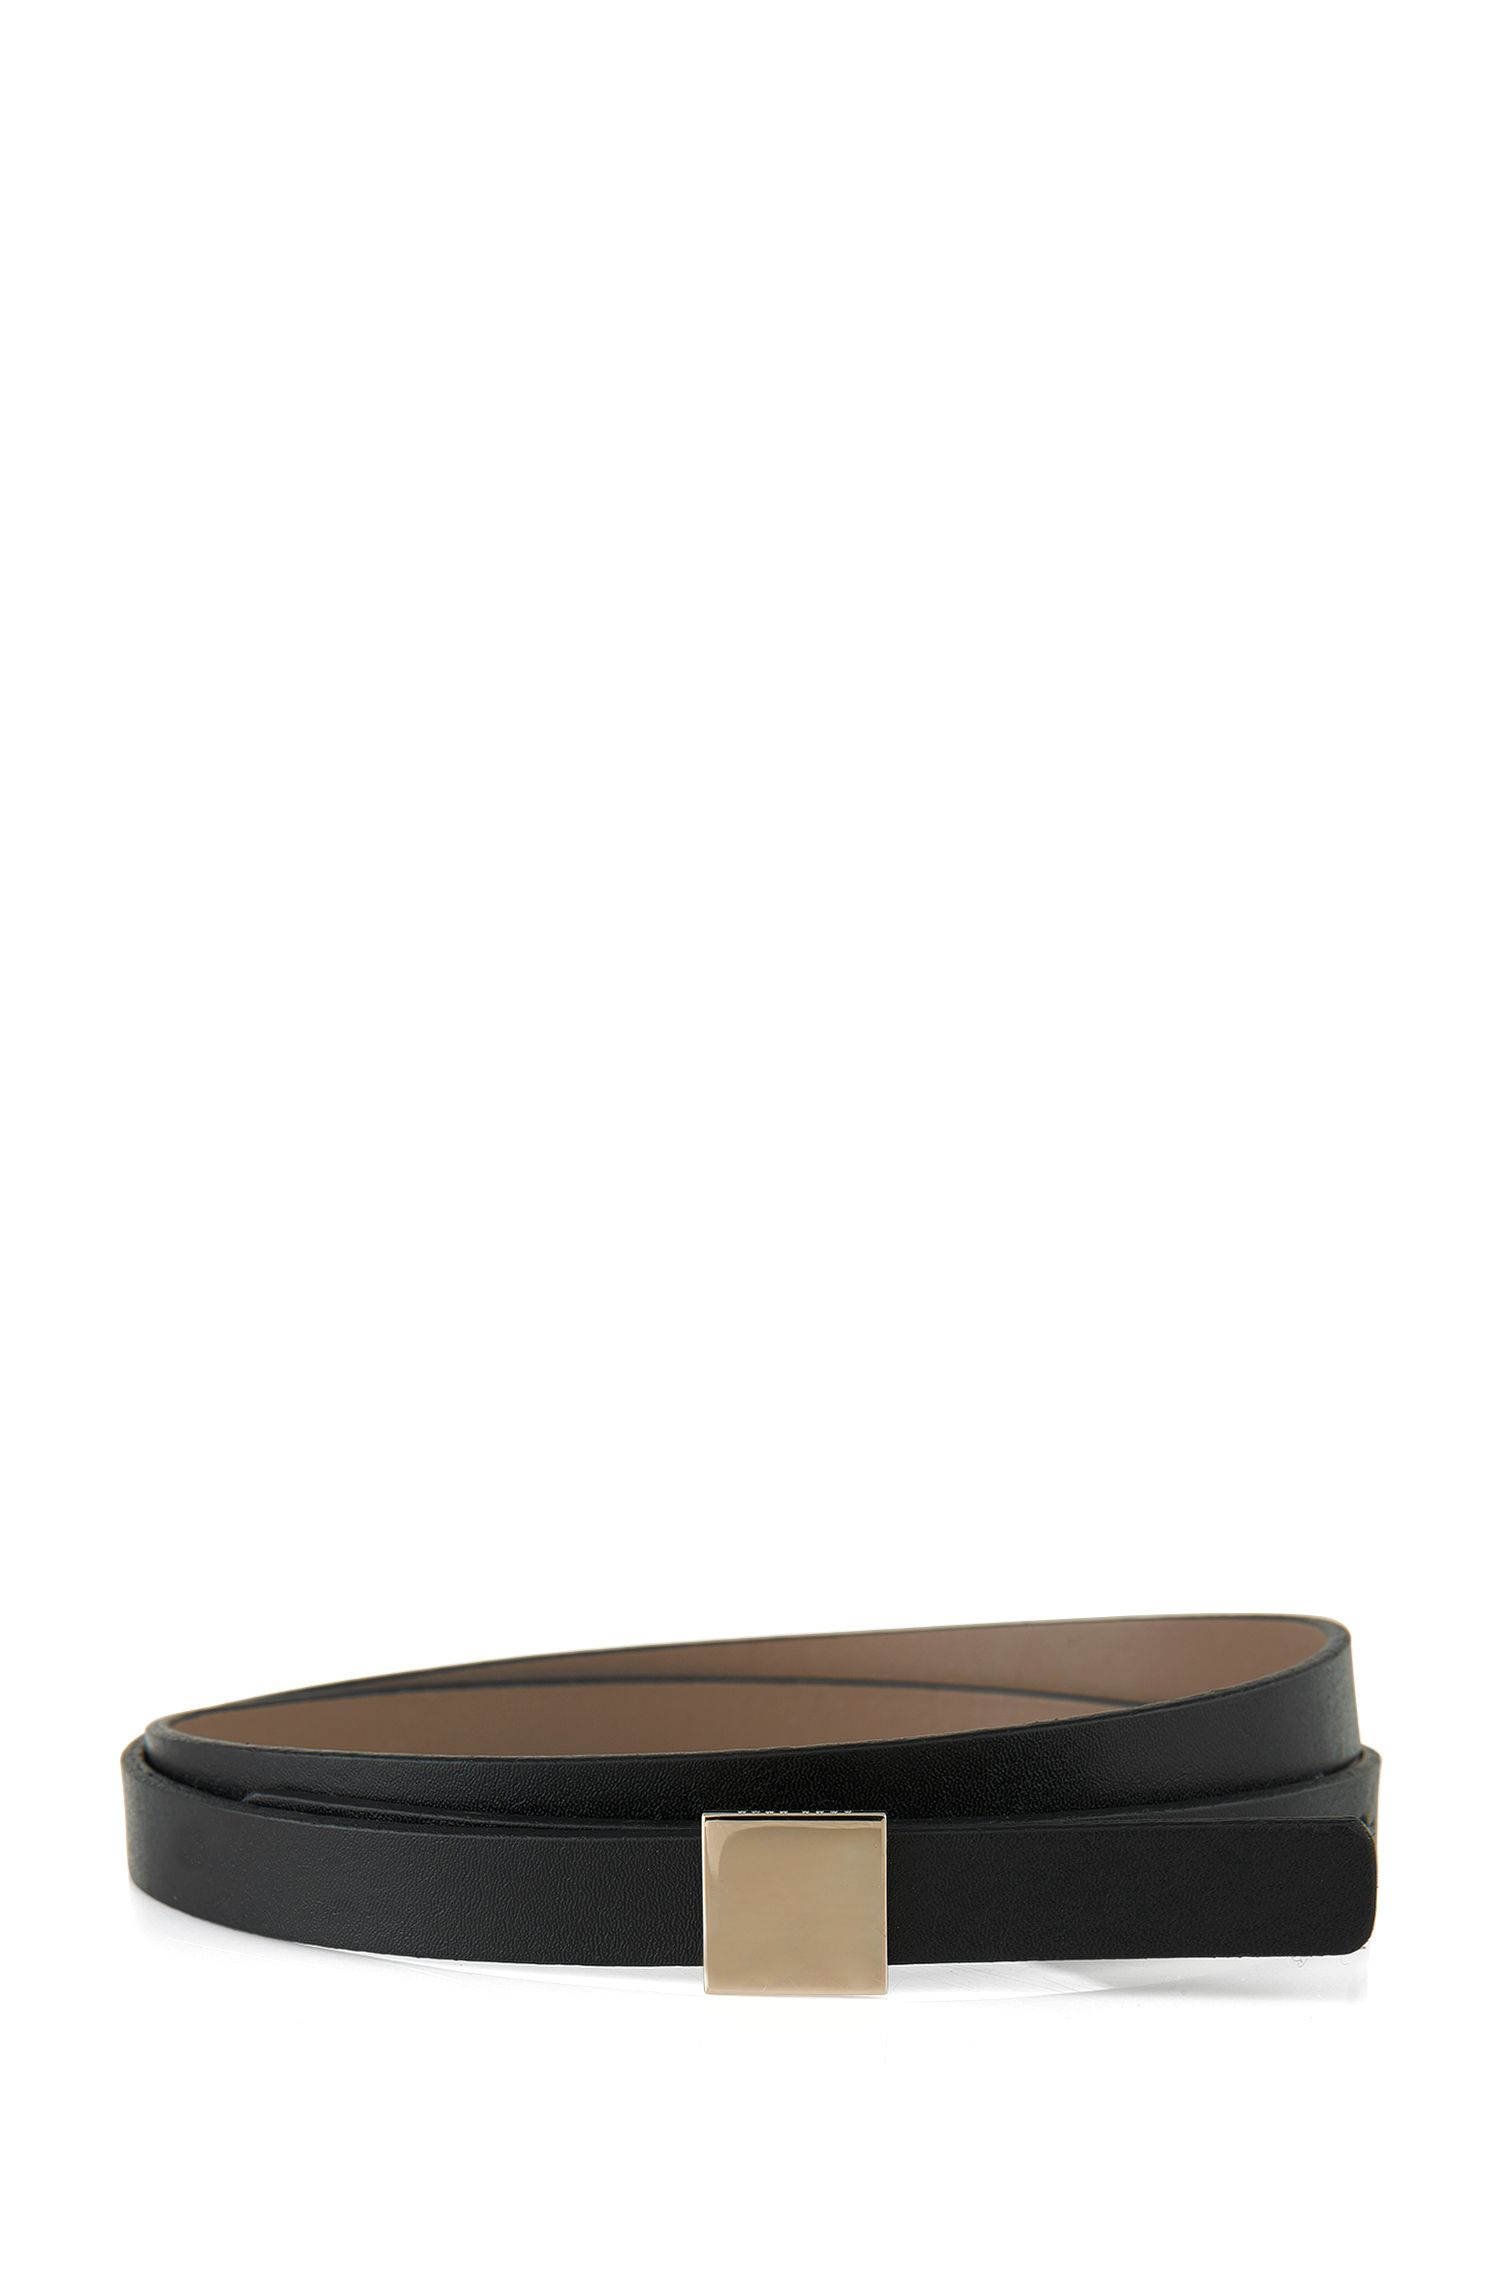 'Bliss' | Leather Reversible Plaque Skinny Belt